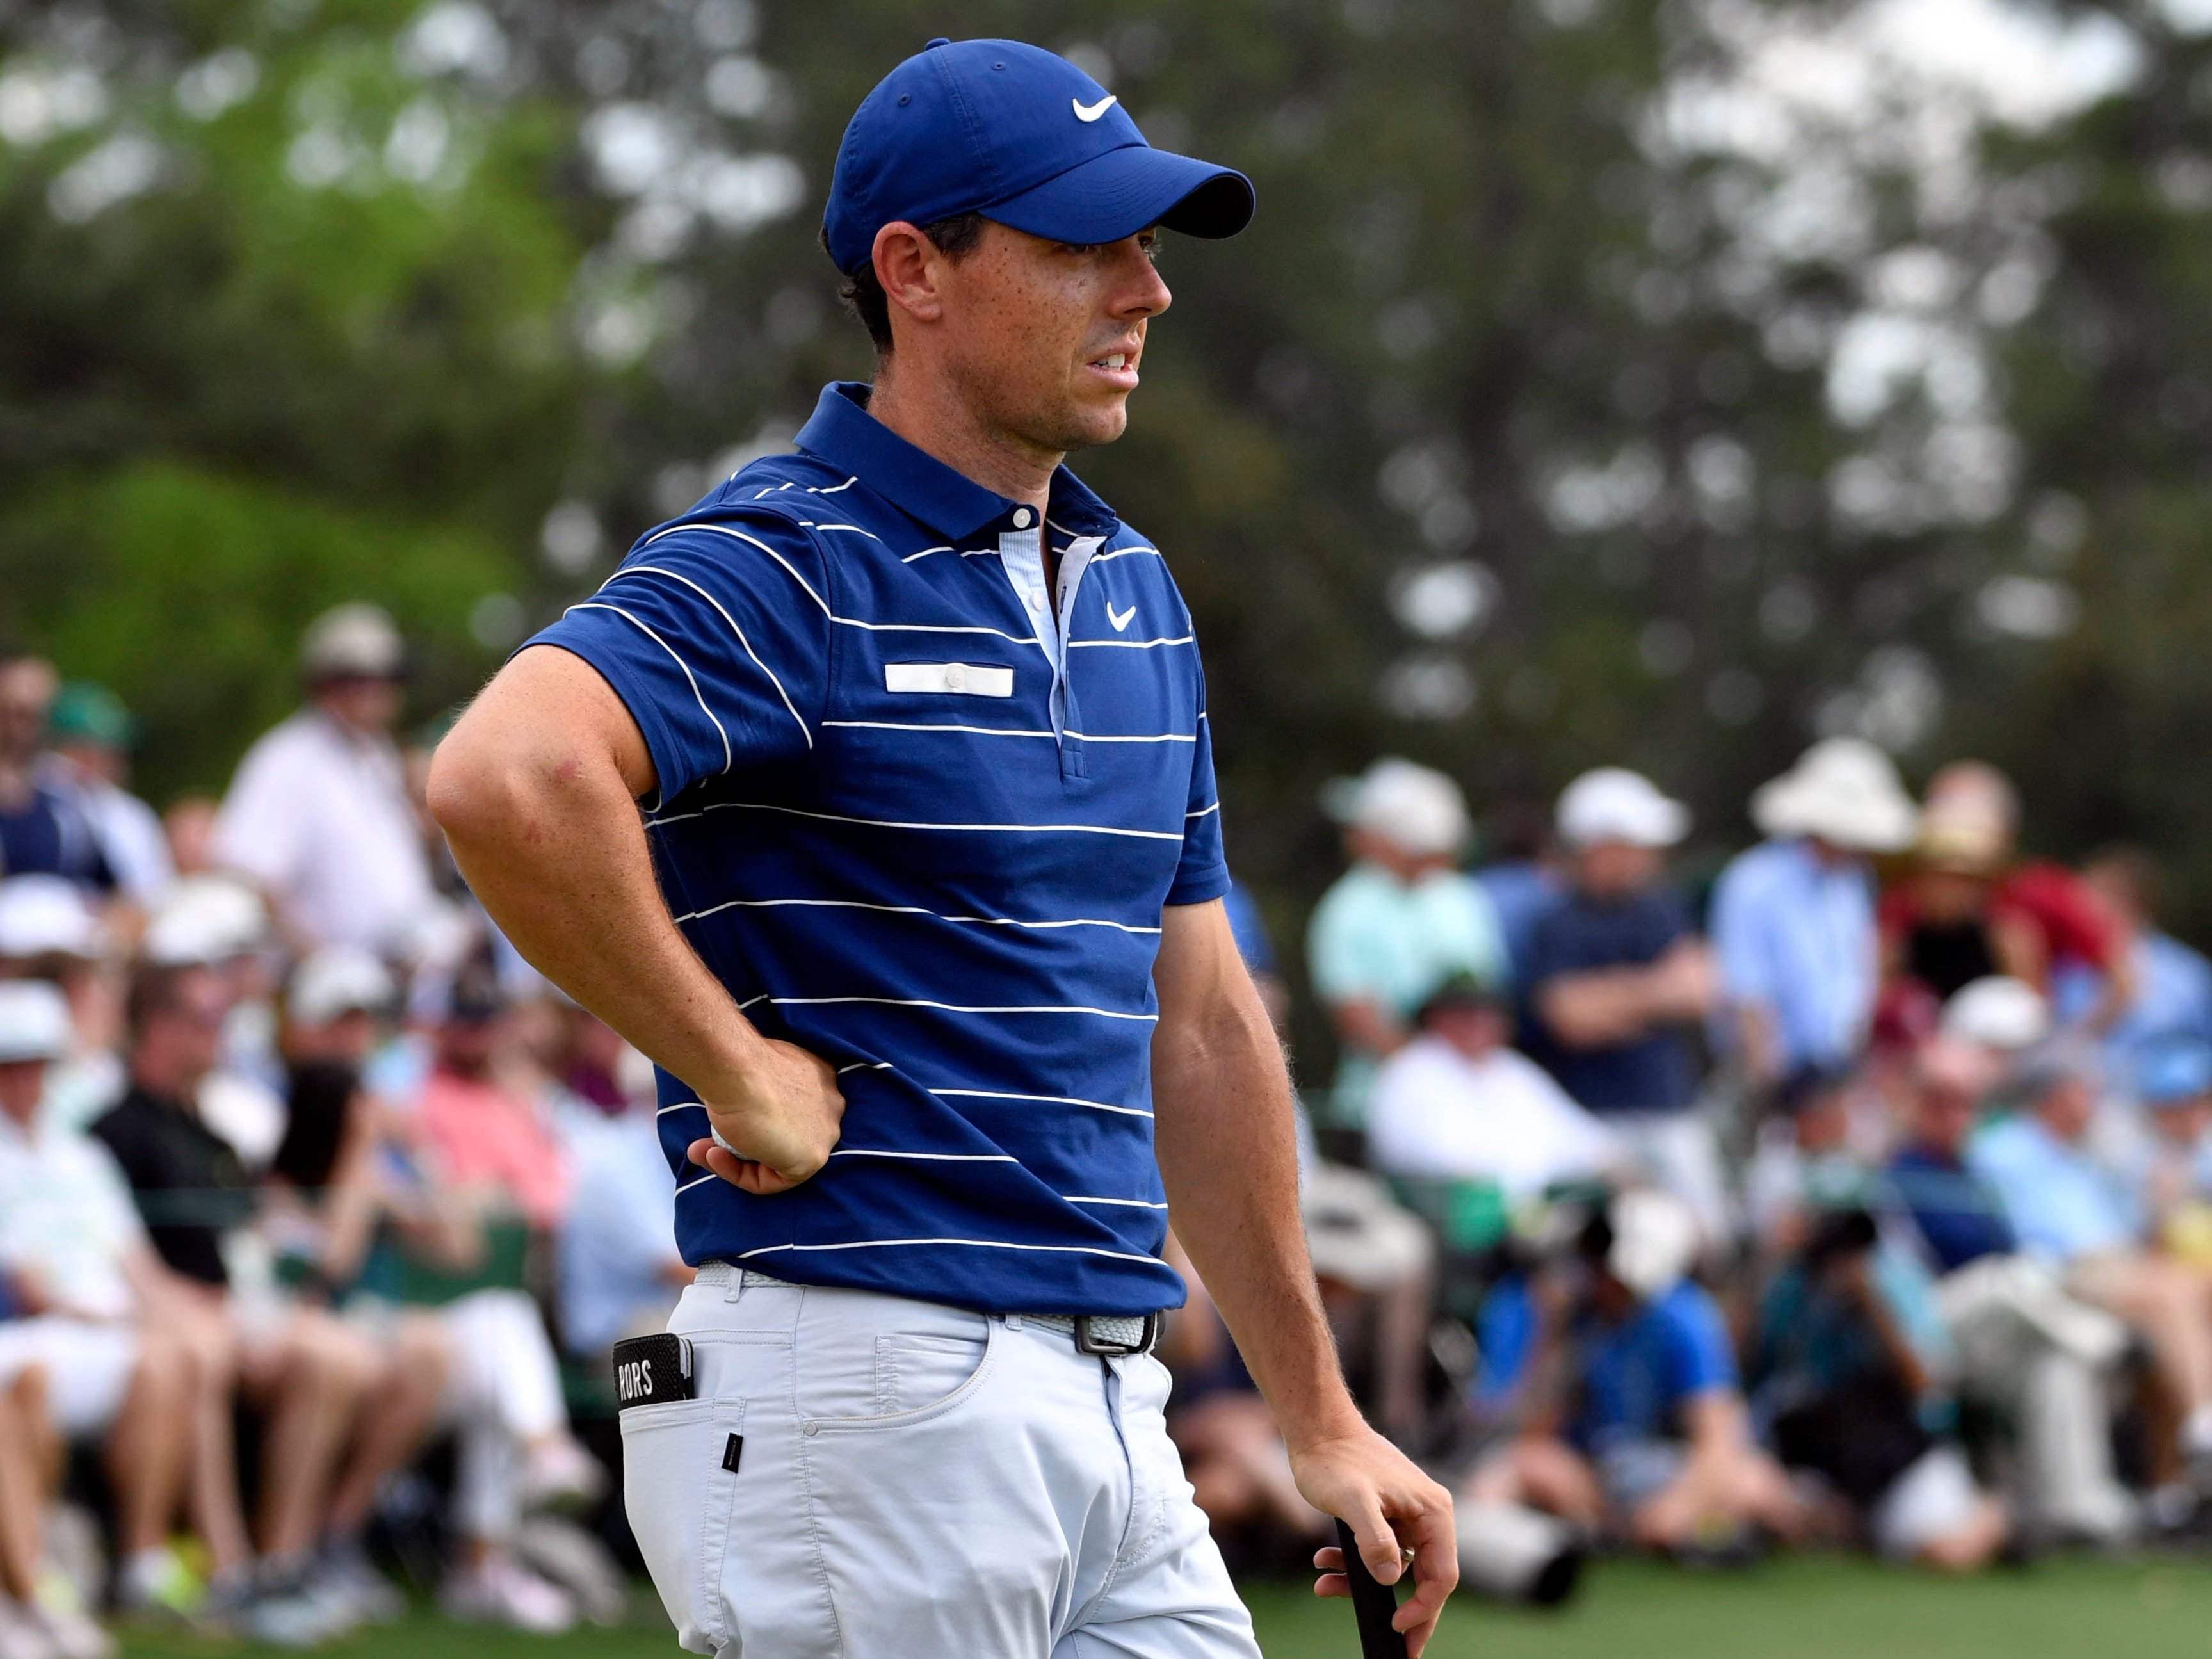 Apr 11, 2019; Augusta, GA, USA; Rory McIlroy on the 18th green during the first round of The Masters golf tournament at Augusta National Golf Club.